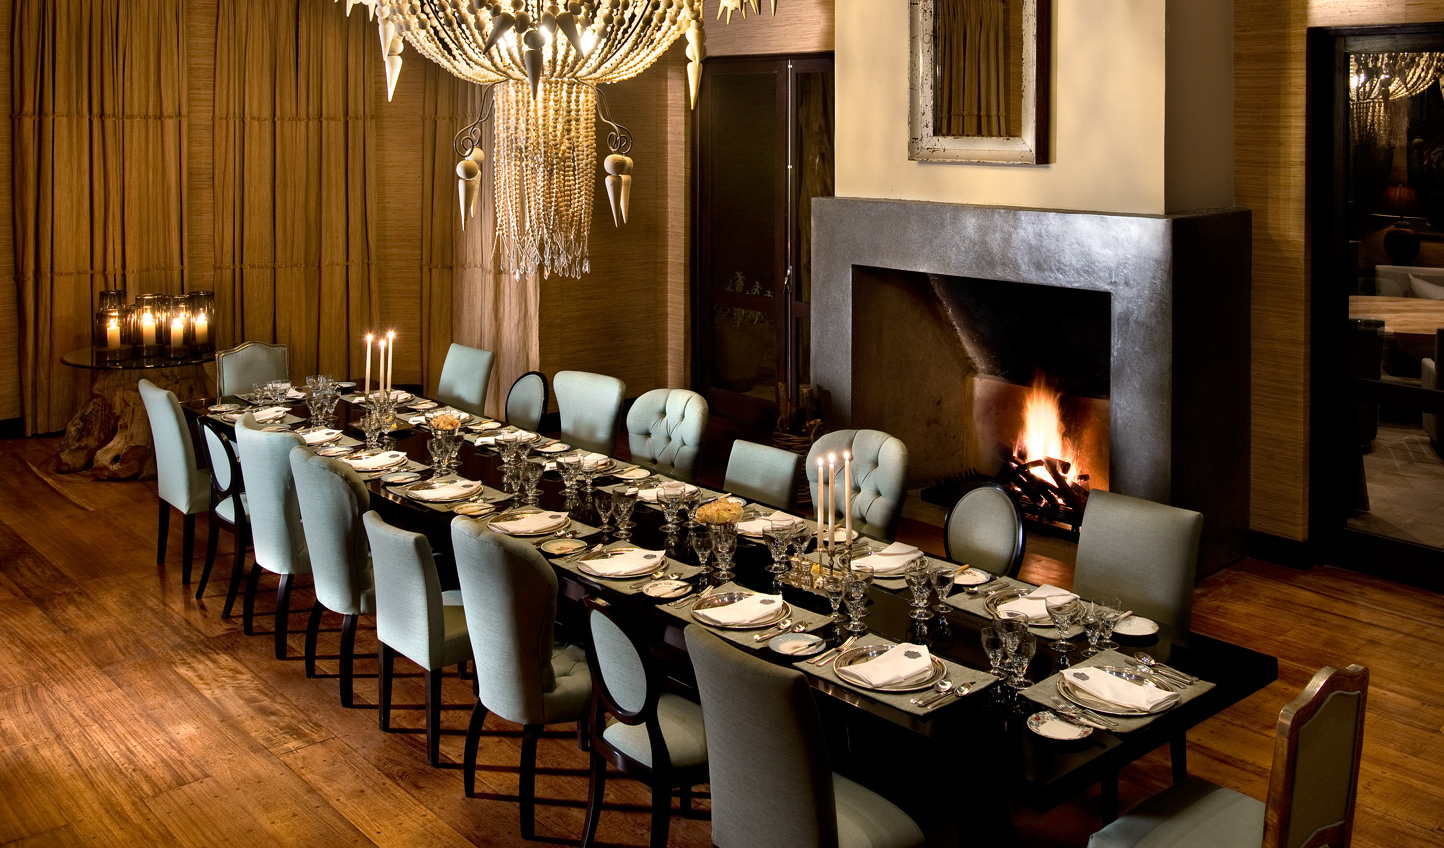 Dine on tailormade menus in the eclectically designed Dining Room